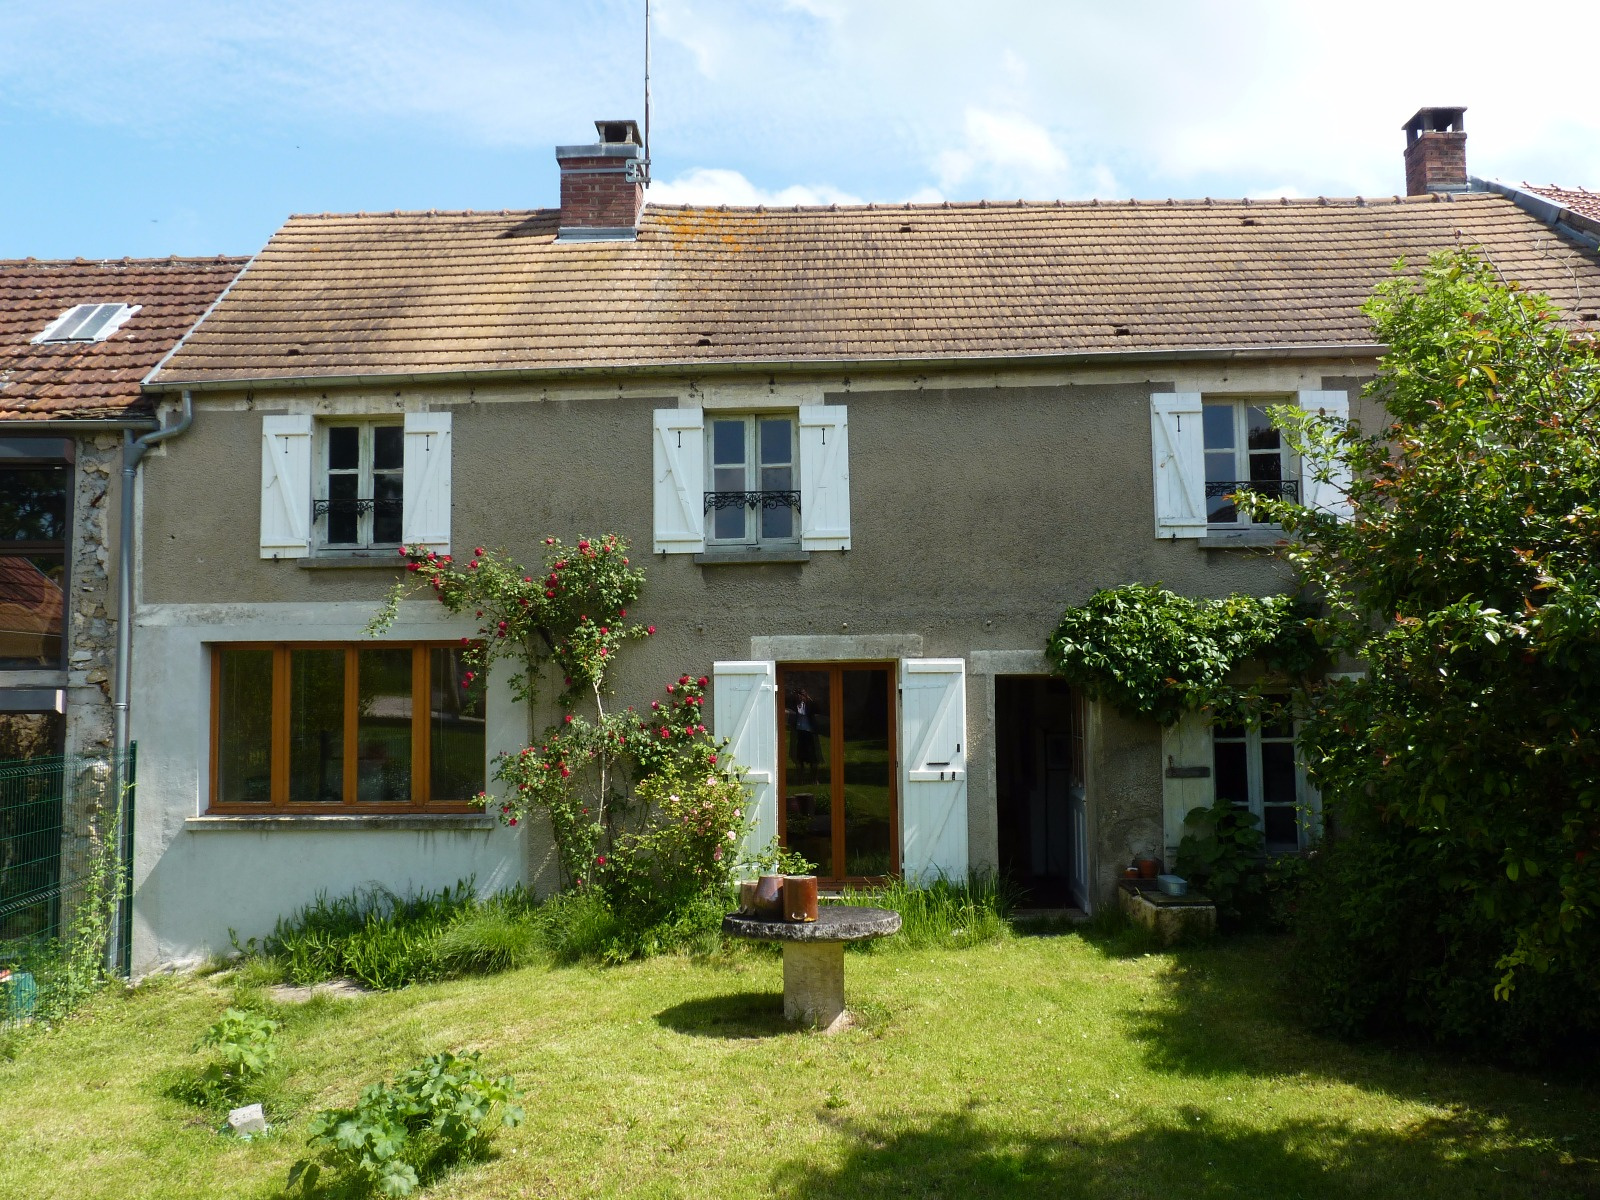 Real immo l 39 immobilier neauphle le chateau beynes - Le comptoir de l immobilier neauphle le chateau ...